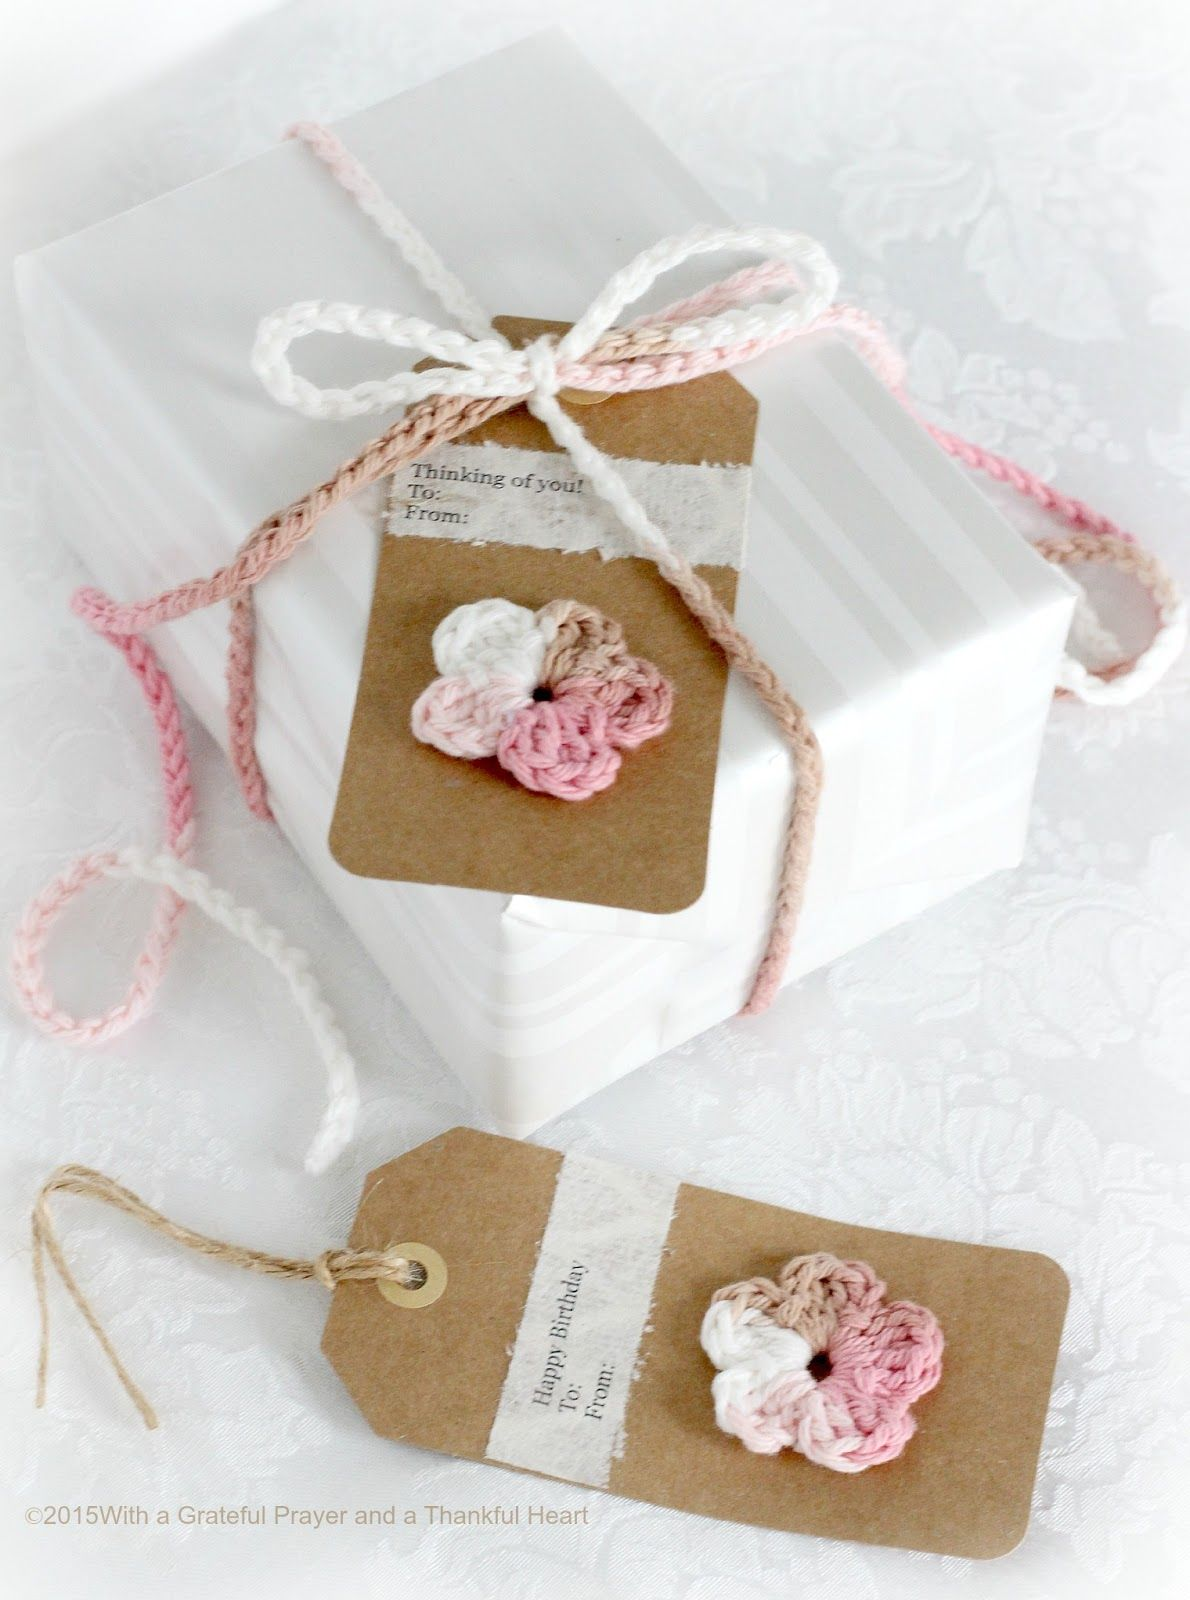 15 Handmade Small Gift Tags with optional Heart designs 100/% Recycled Card